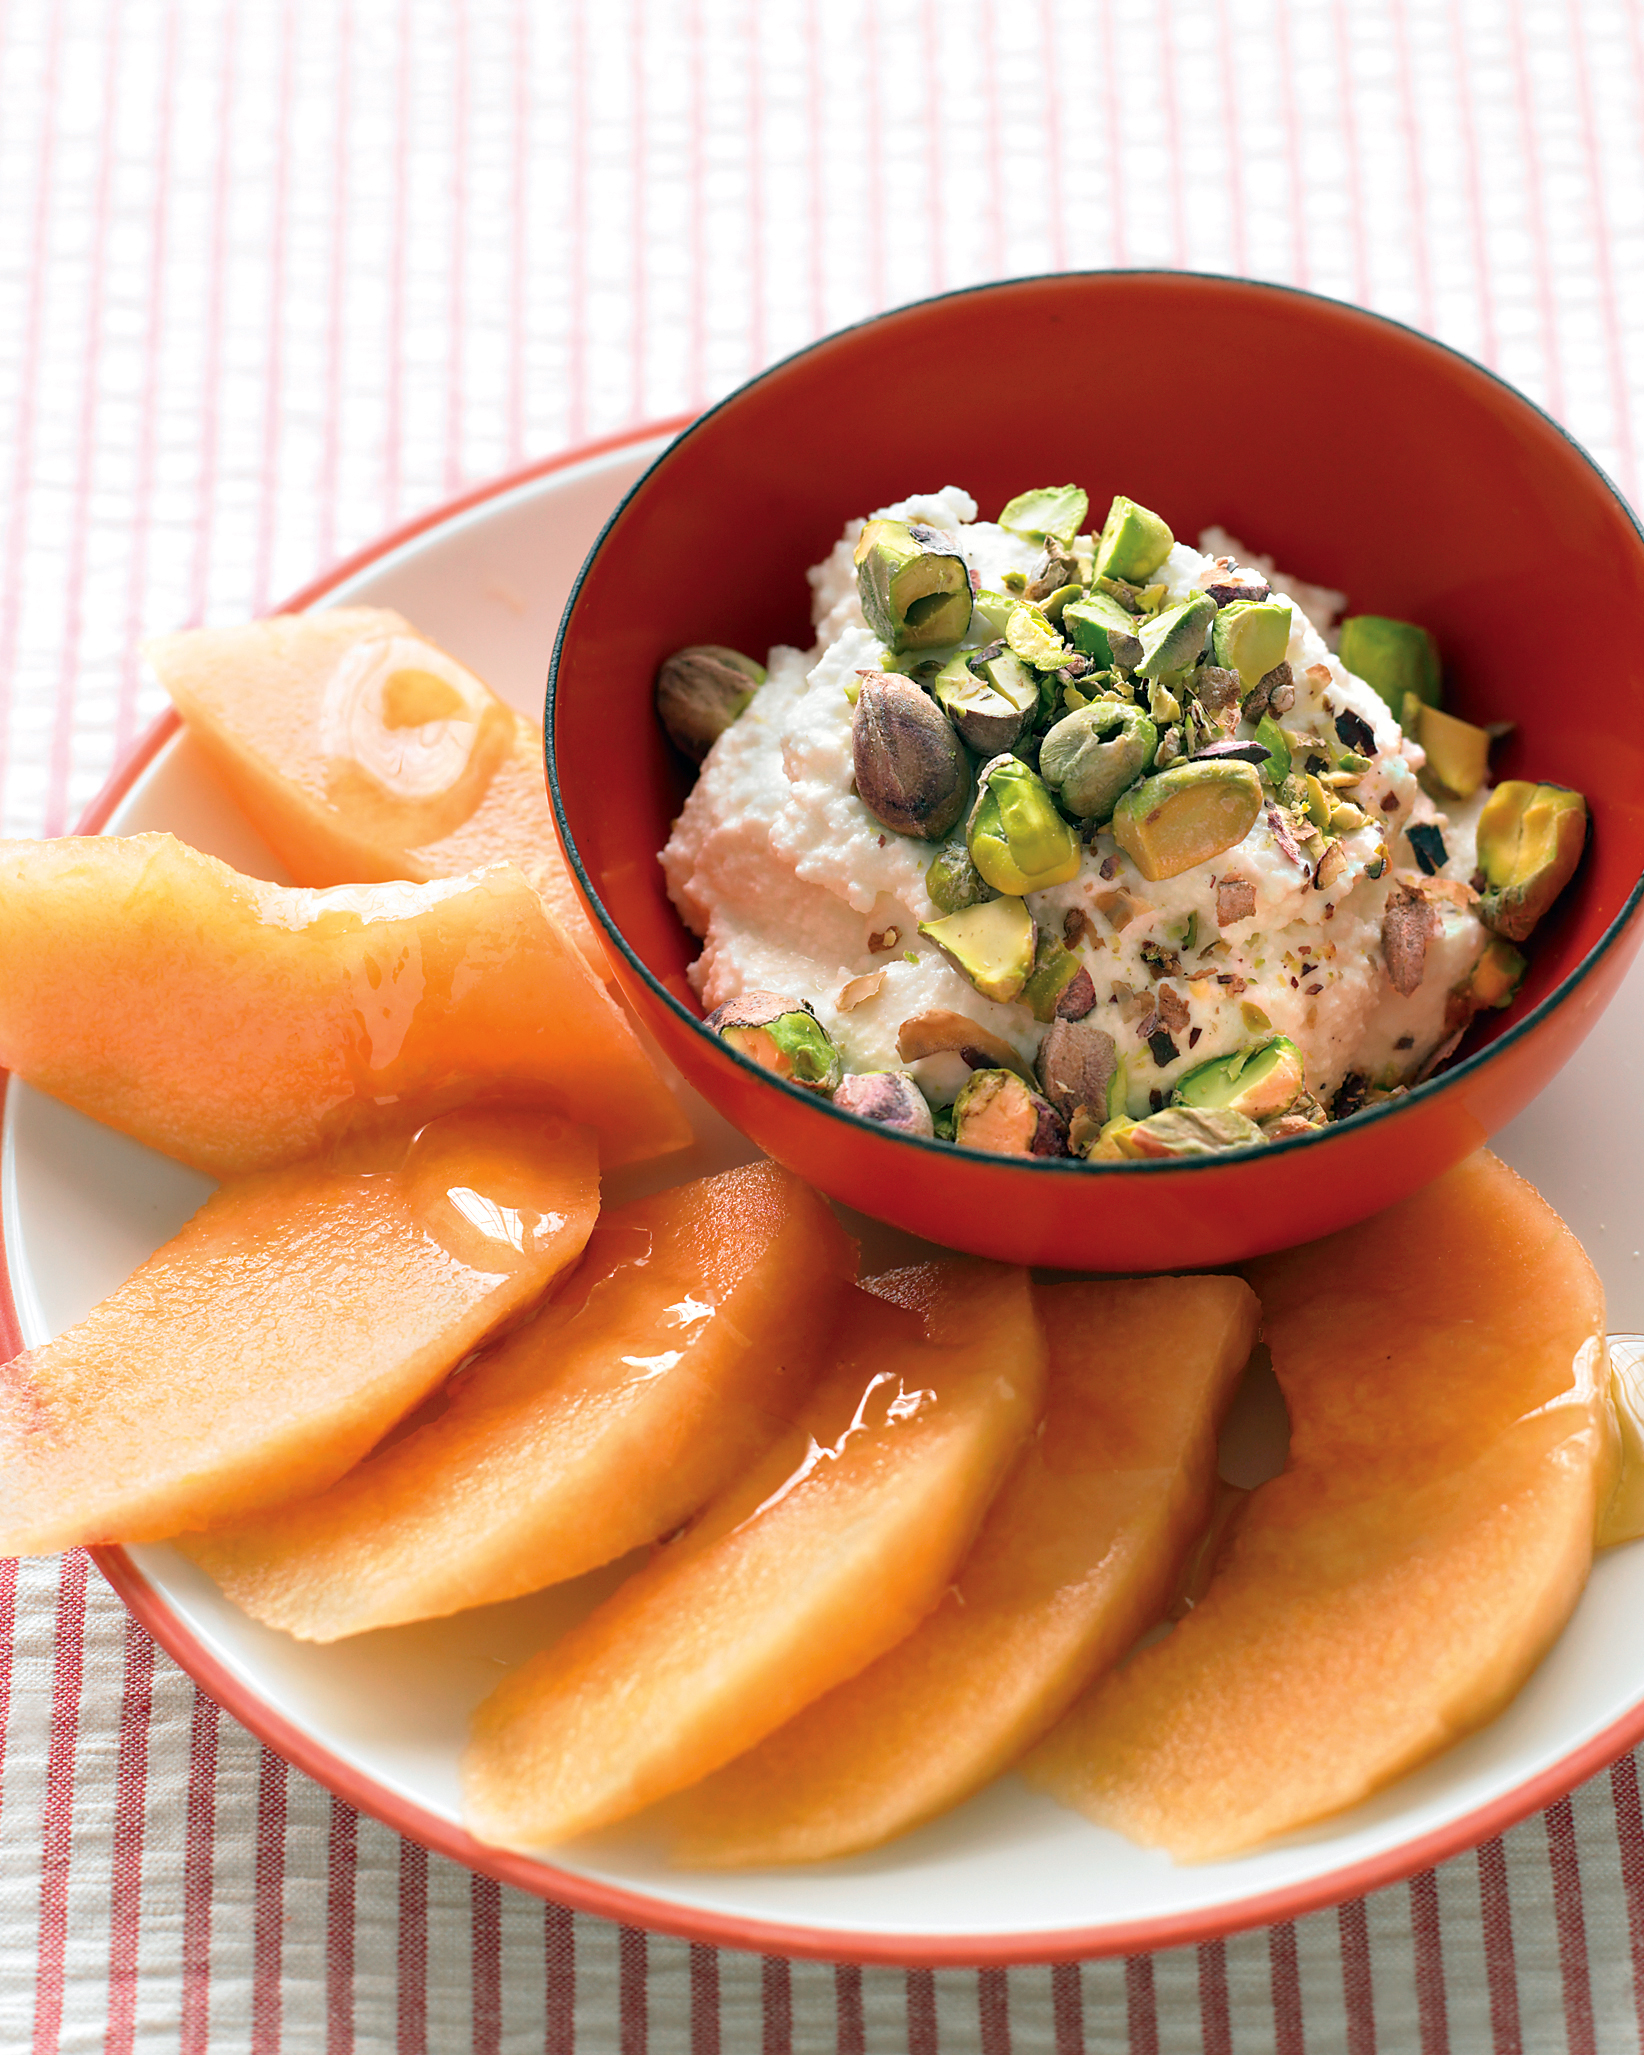 Cantaloupe with Ricotta and Pistachios